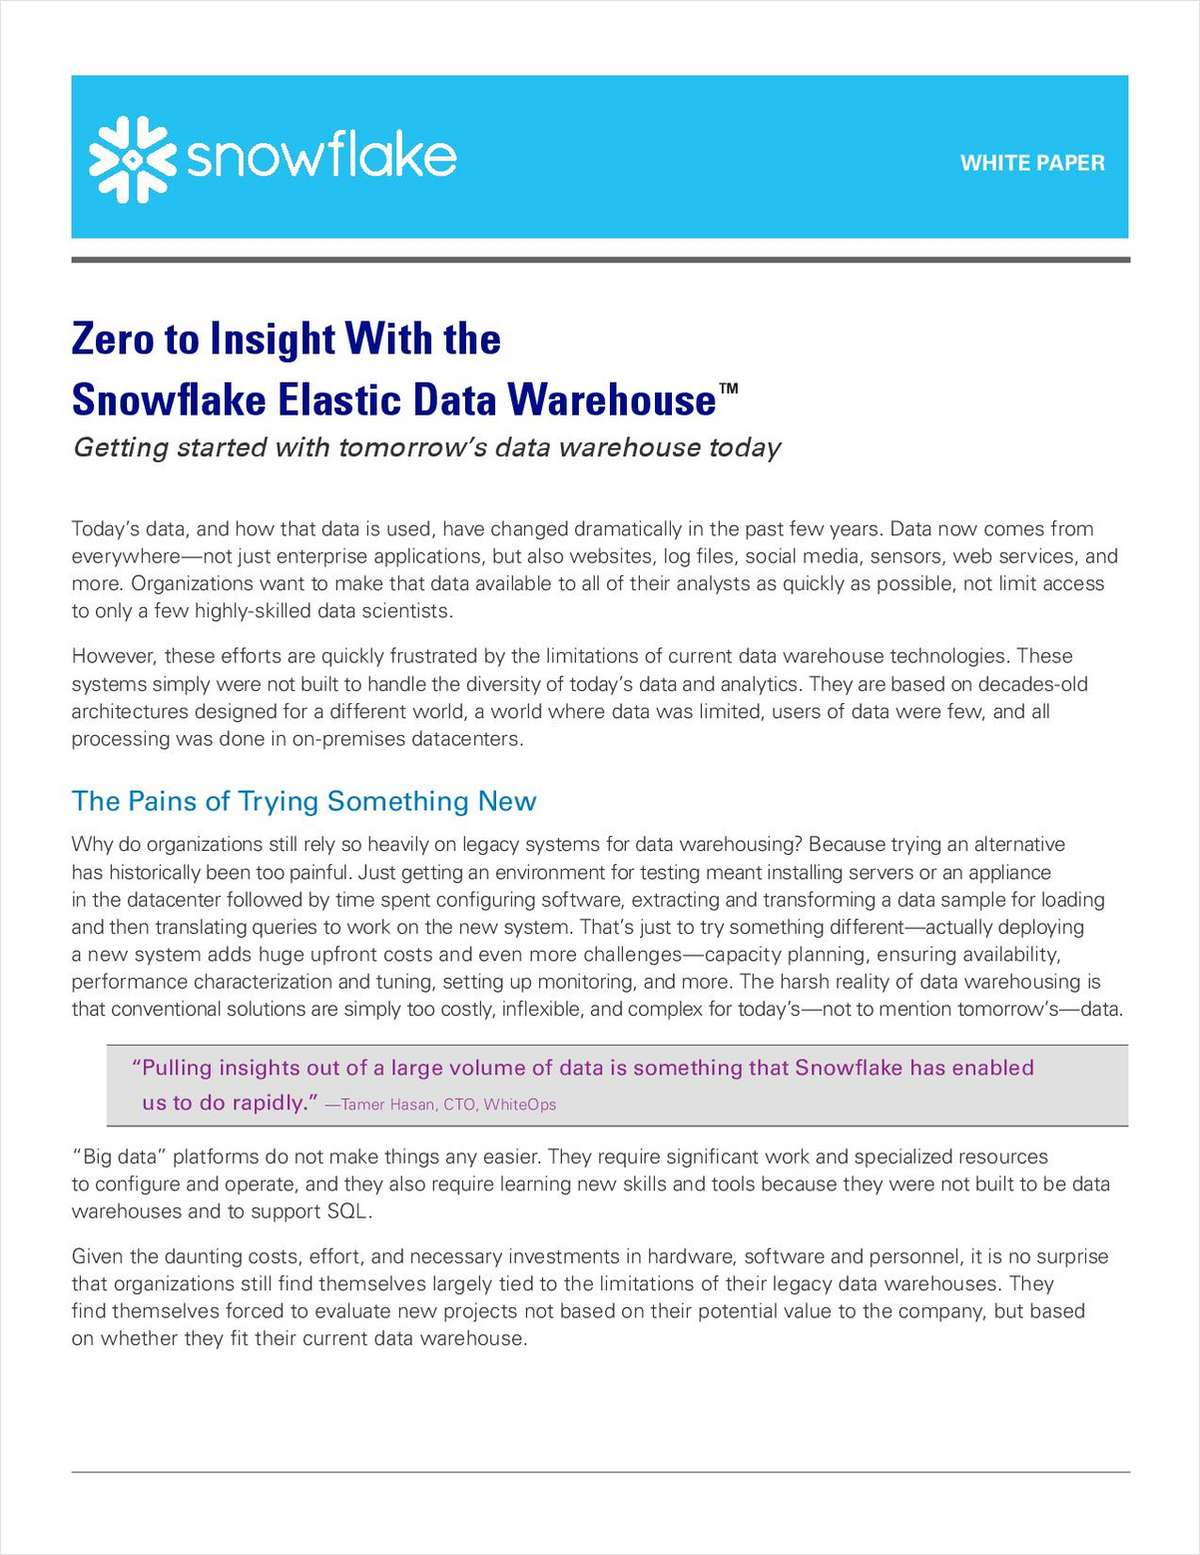 Zero to Insight with the Snowflake Elastic Data Warehouse™